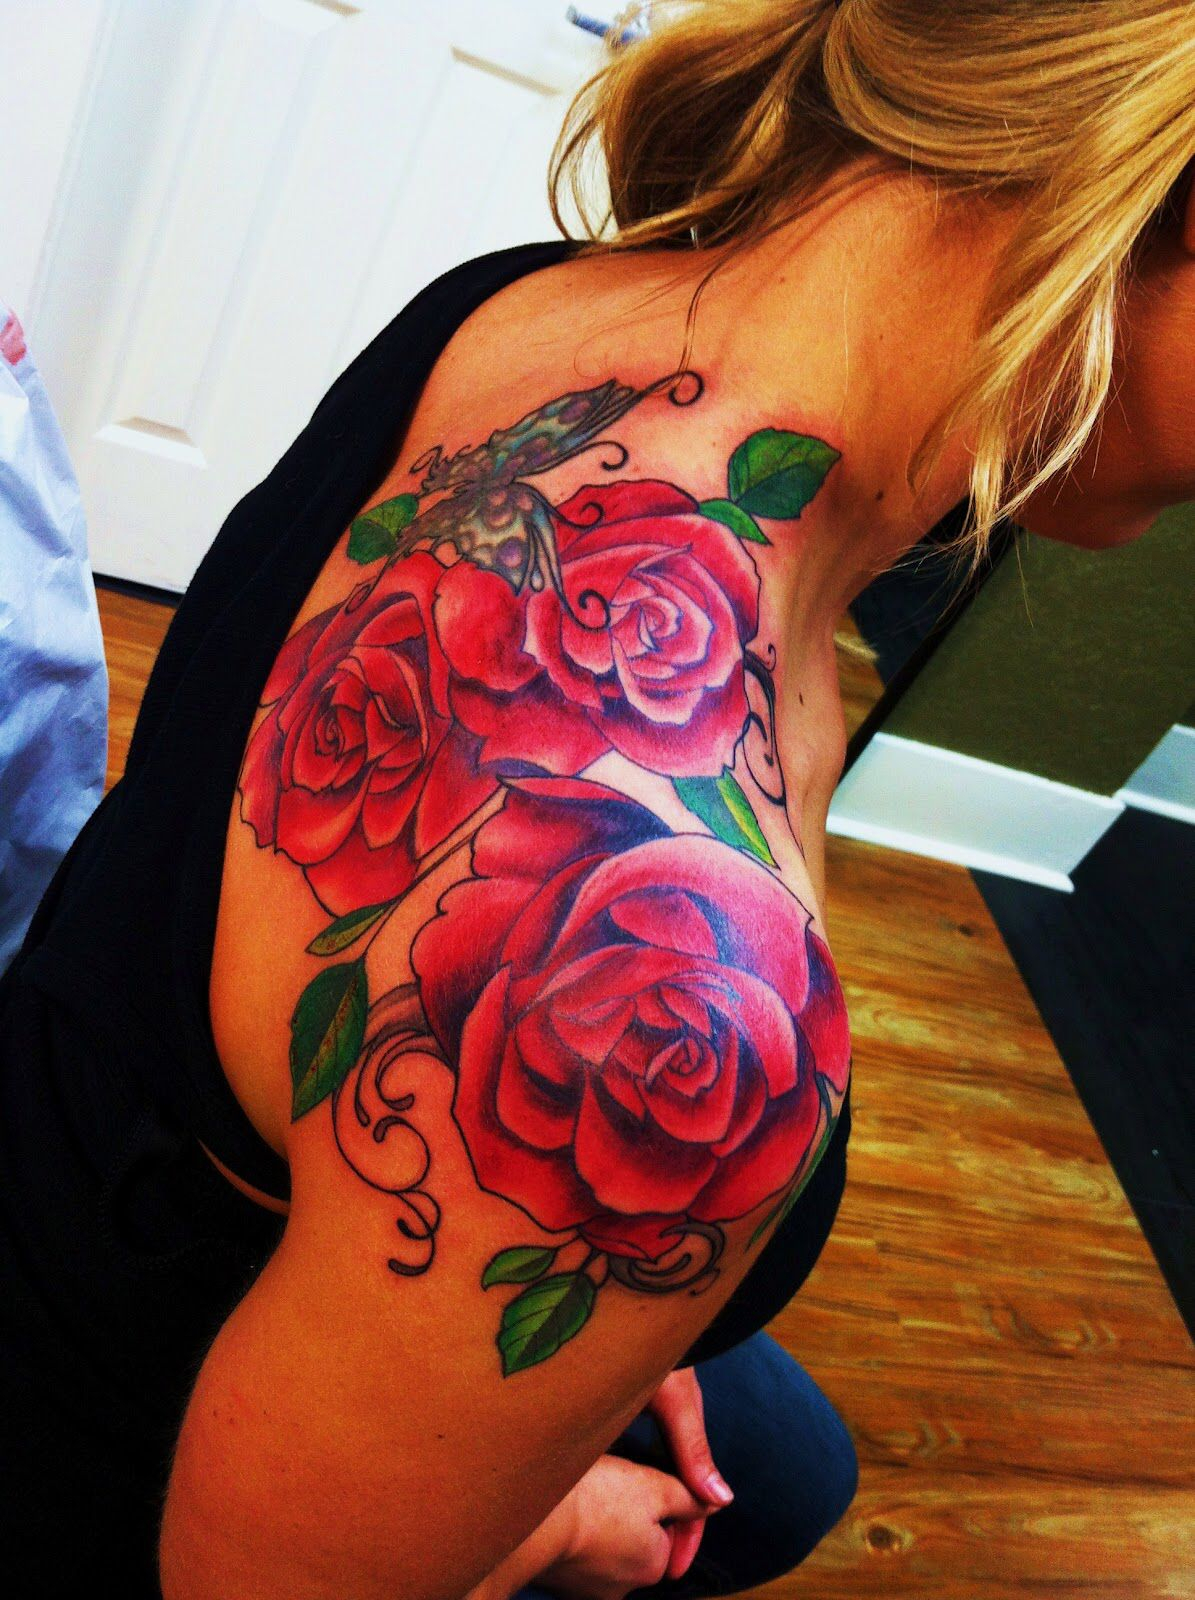 Beautiful Great Color Artist Did An Excellent Job Tattoos within proportions 1195 X 1600